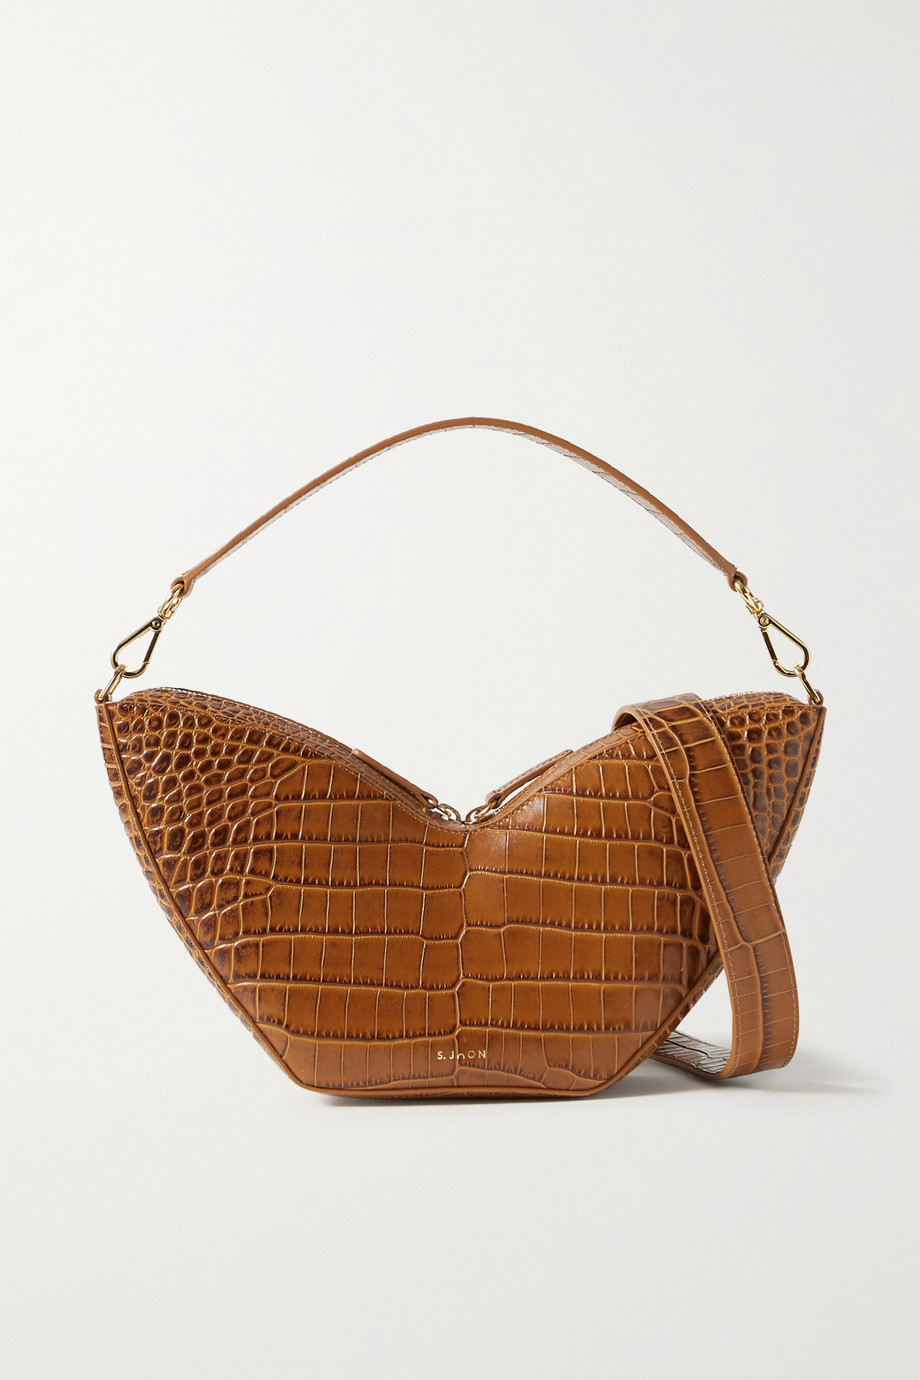 S.Joon Tulip croc-effect leather shoulder bag